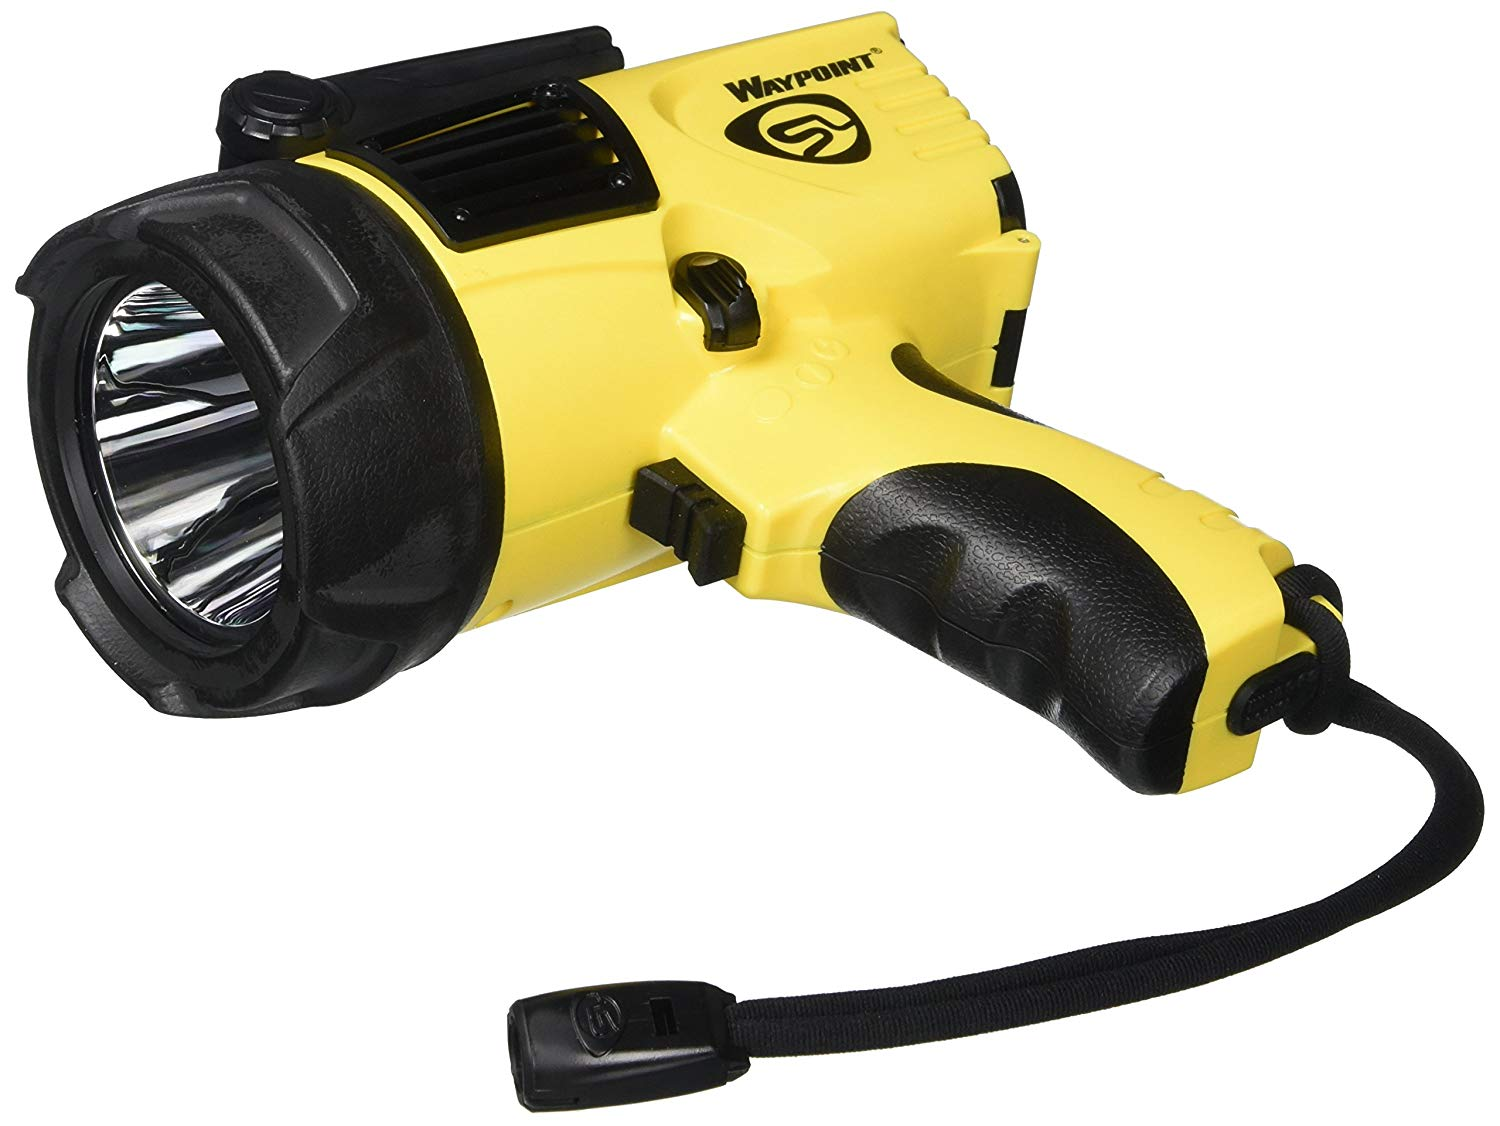 Streamlight 44900 Waypoint Spotlight with 12V DC Power Cord